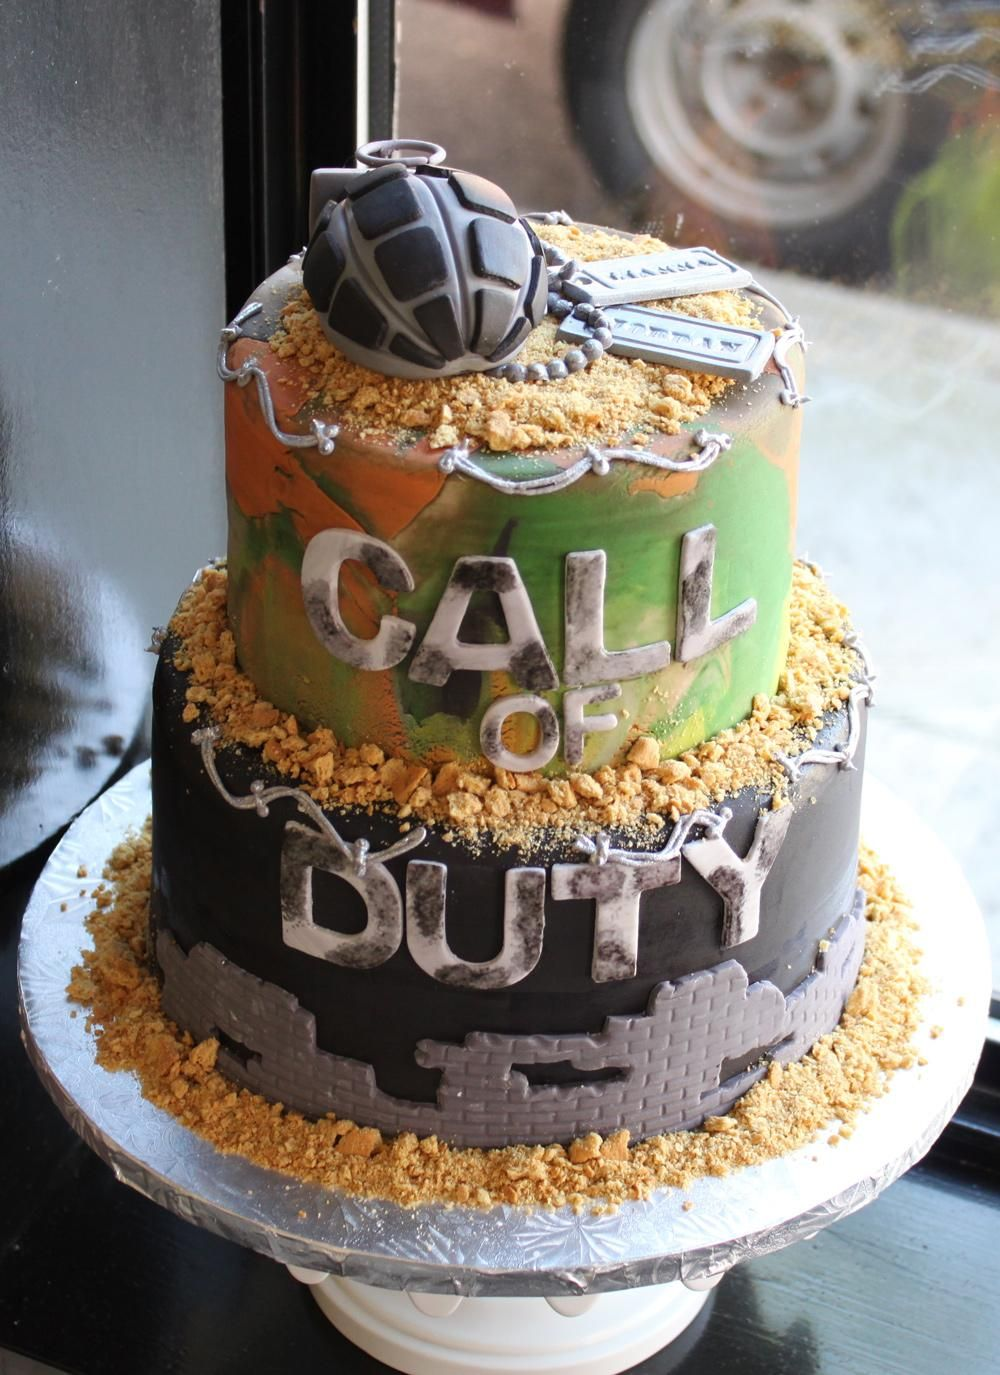 Call of duty grooms cake whipped grooms cake